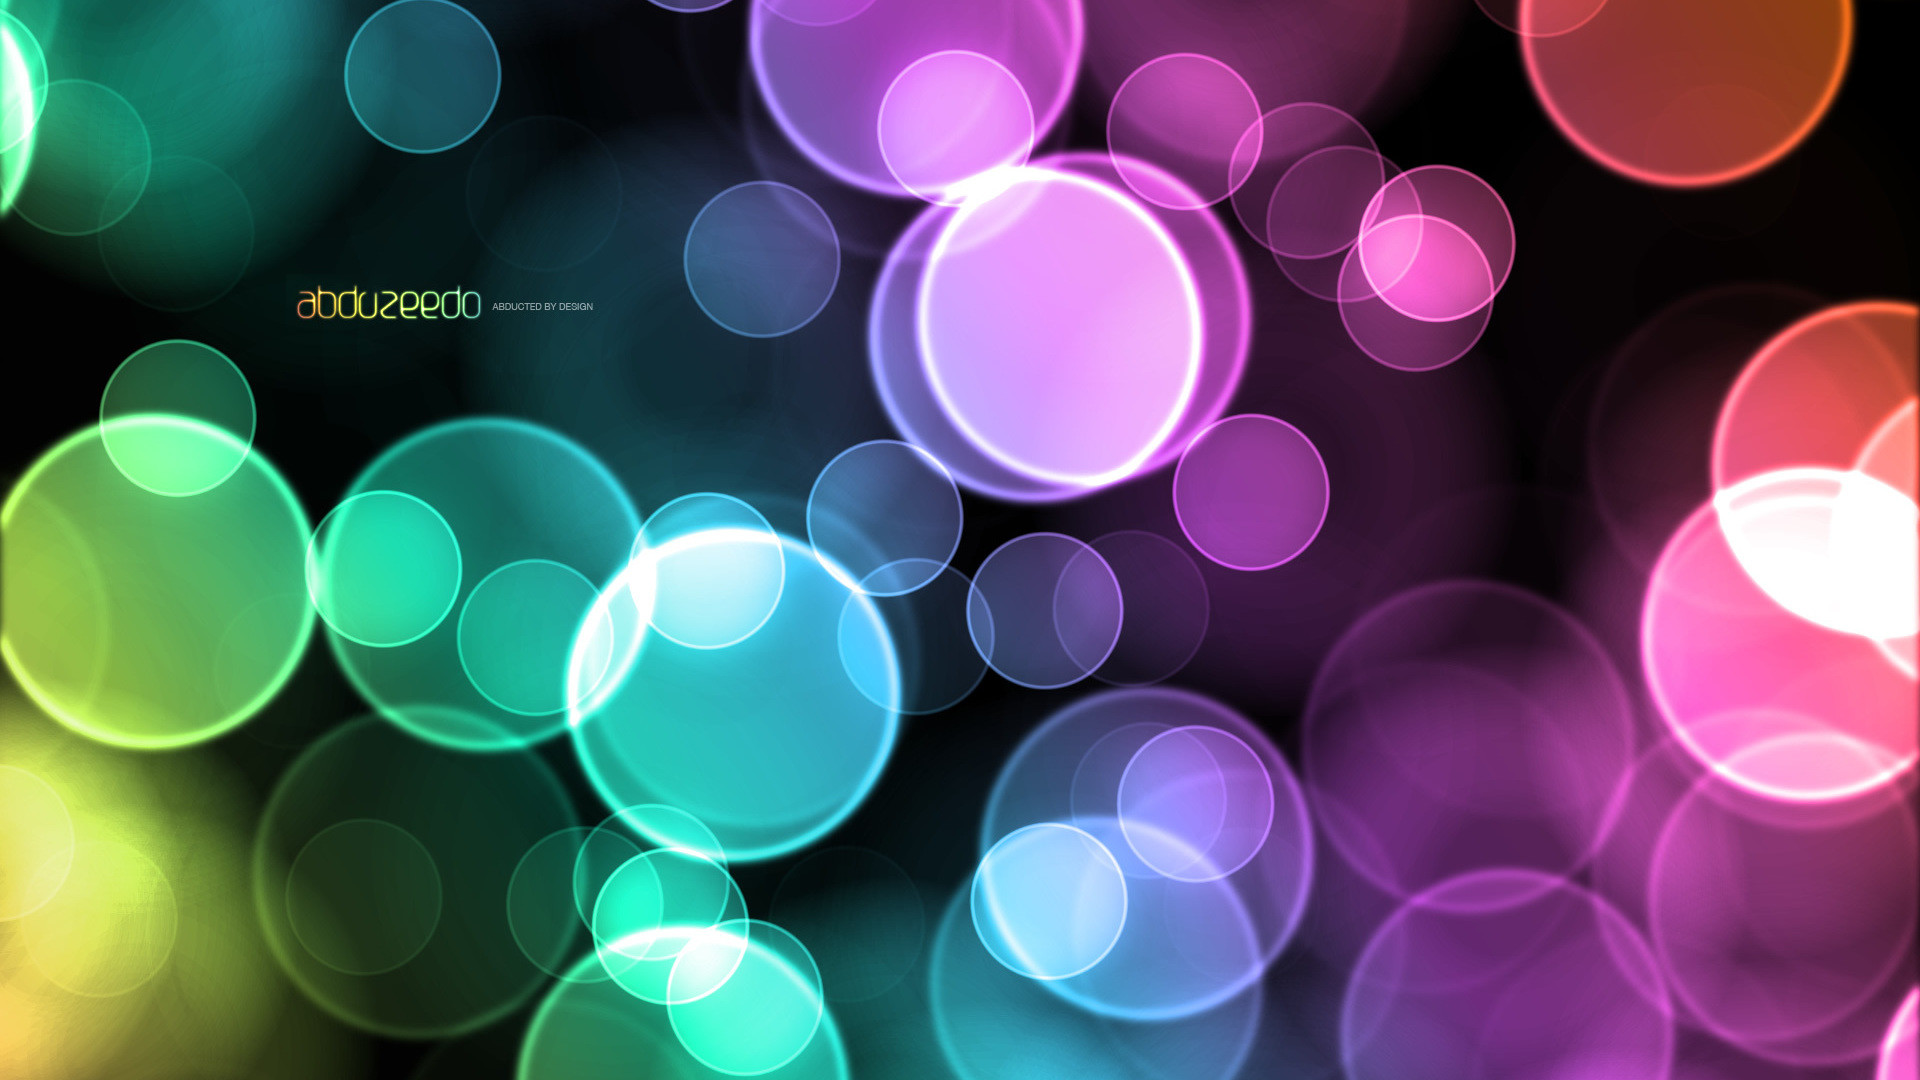 Abstract Circle Design Wallpaper Photos Collections Yoanu Com Latest  Awesome Z5id6152. interior design major. …